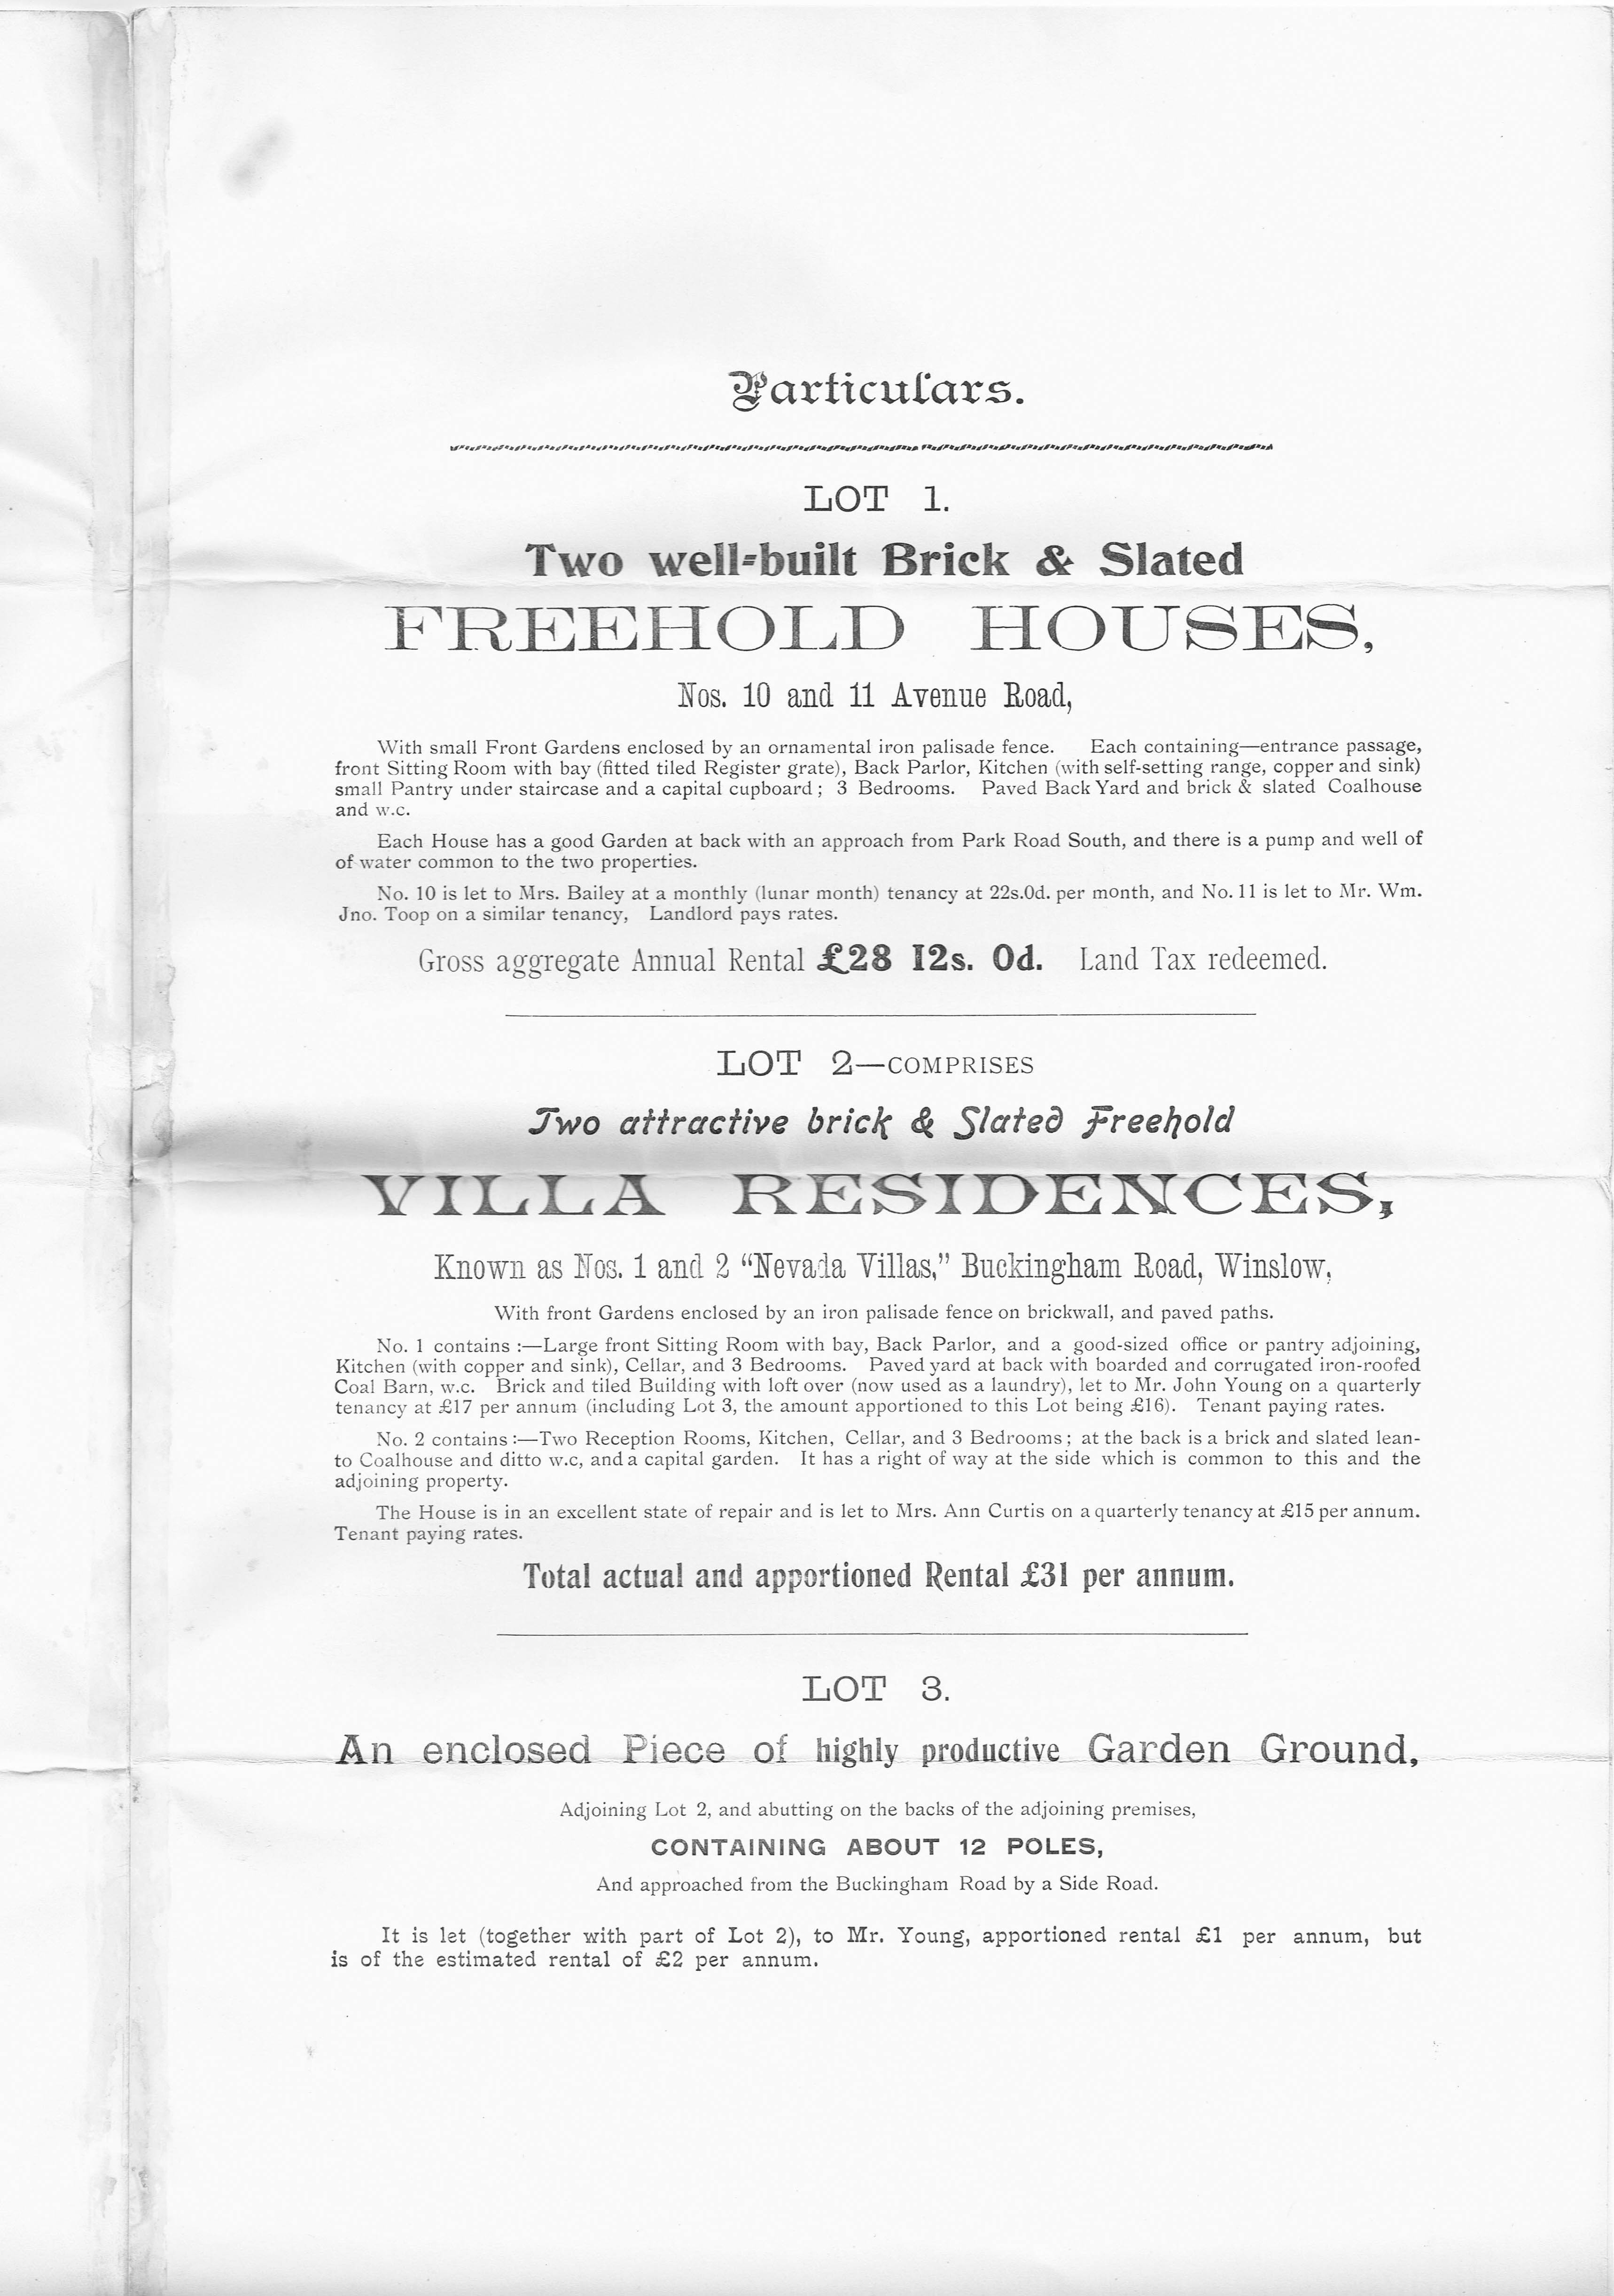 Nevada Villas sale 1909 p2